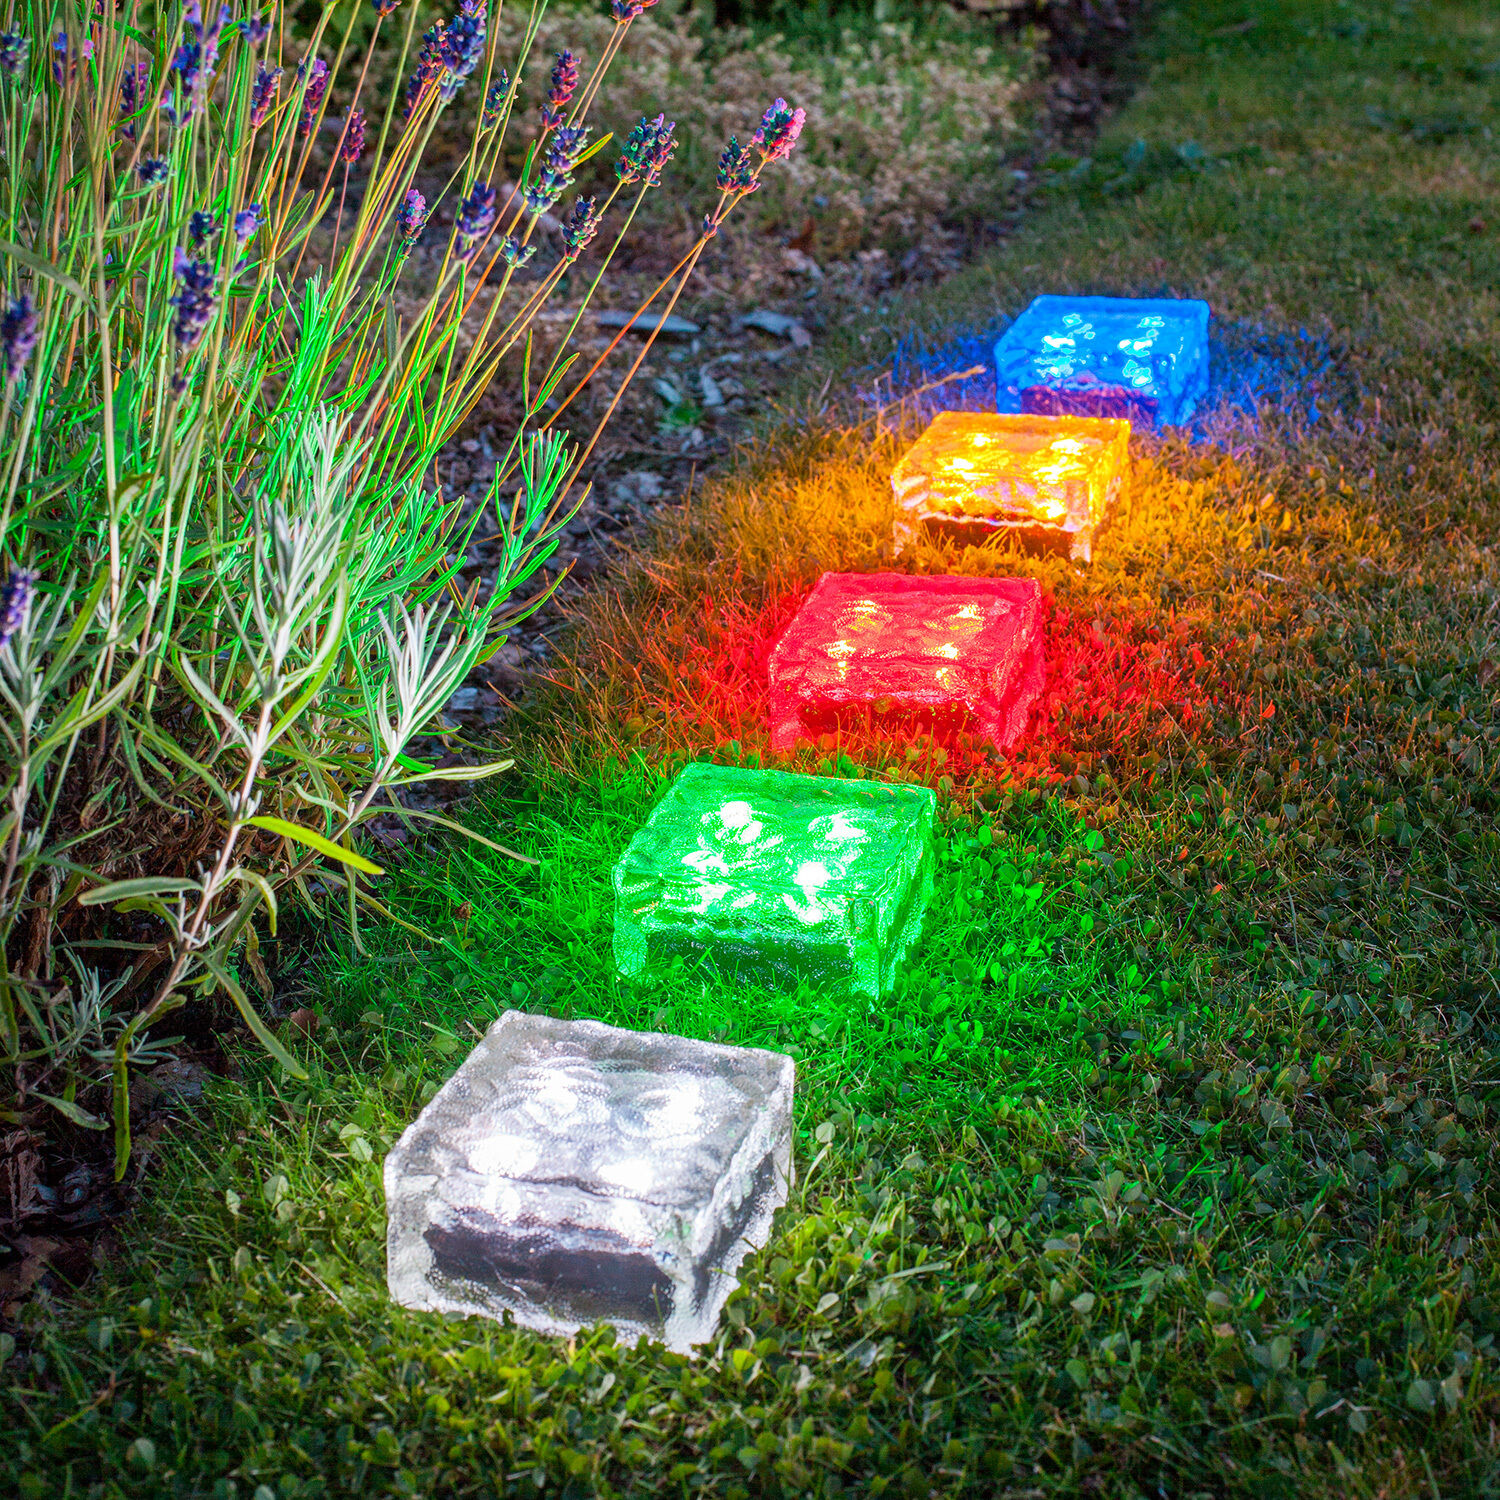 1 12x led solar pflasterstein weg beleuchtung garten leuchte led stein milchglas ebay. Black Bedroom Furniture Sets. Home Design Ideas